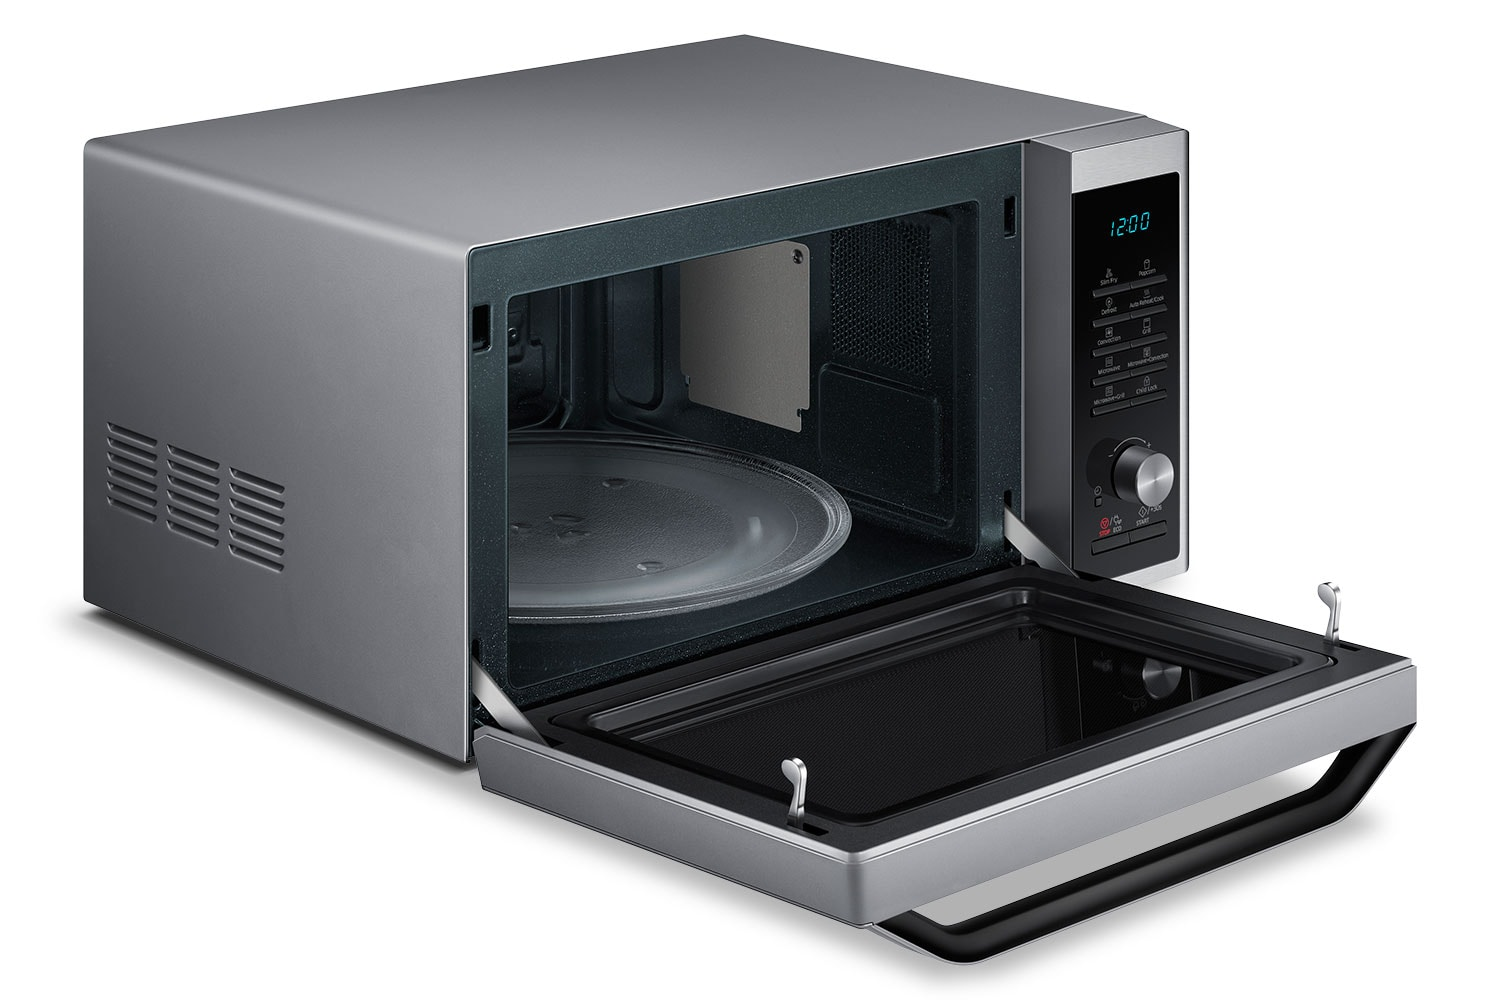 Samsung Stainless Steel Countertop Convection Microwave 1